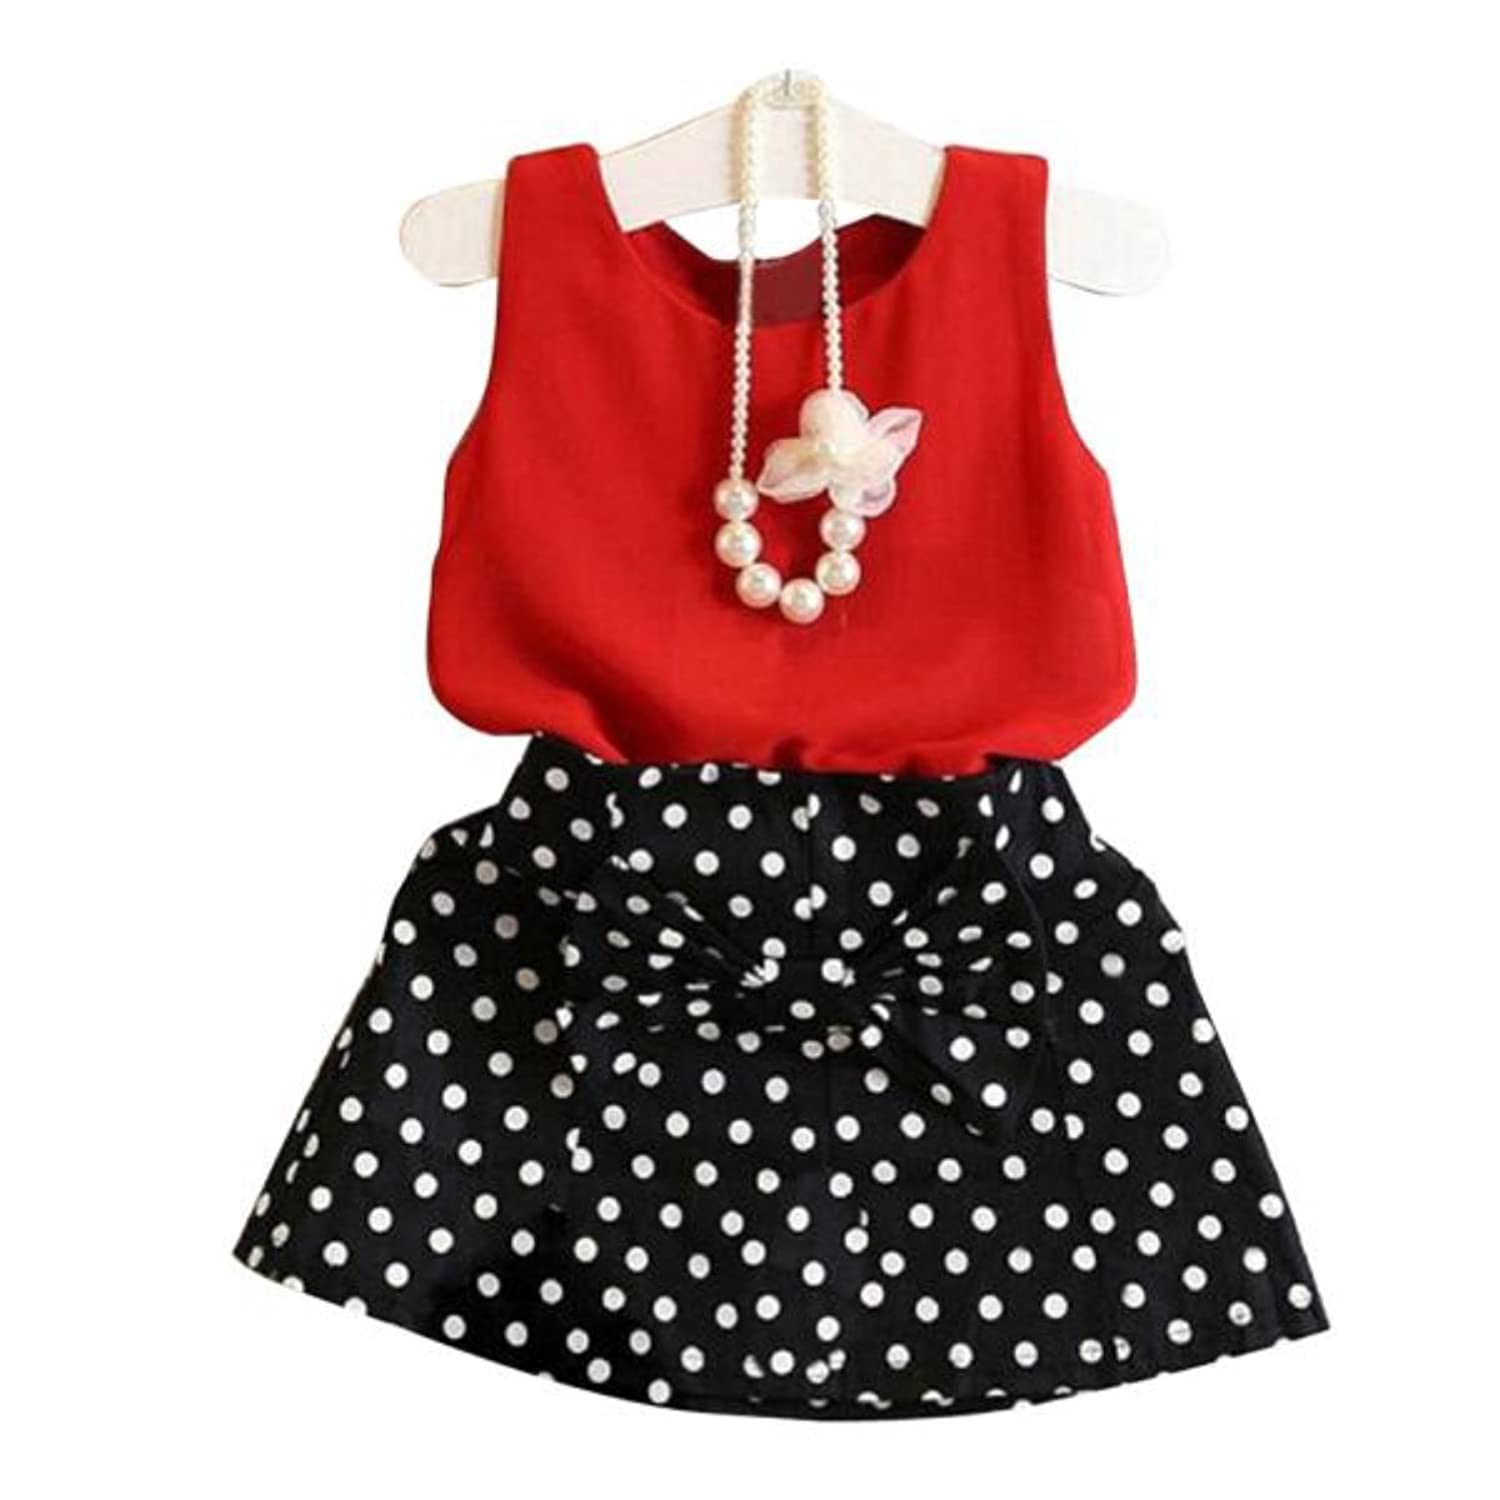 0fe8f97d0 Red Sleeveless Top with Black Polka Dots Short Skirt Having Bow for Girls  (1-